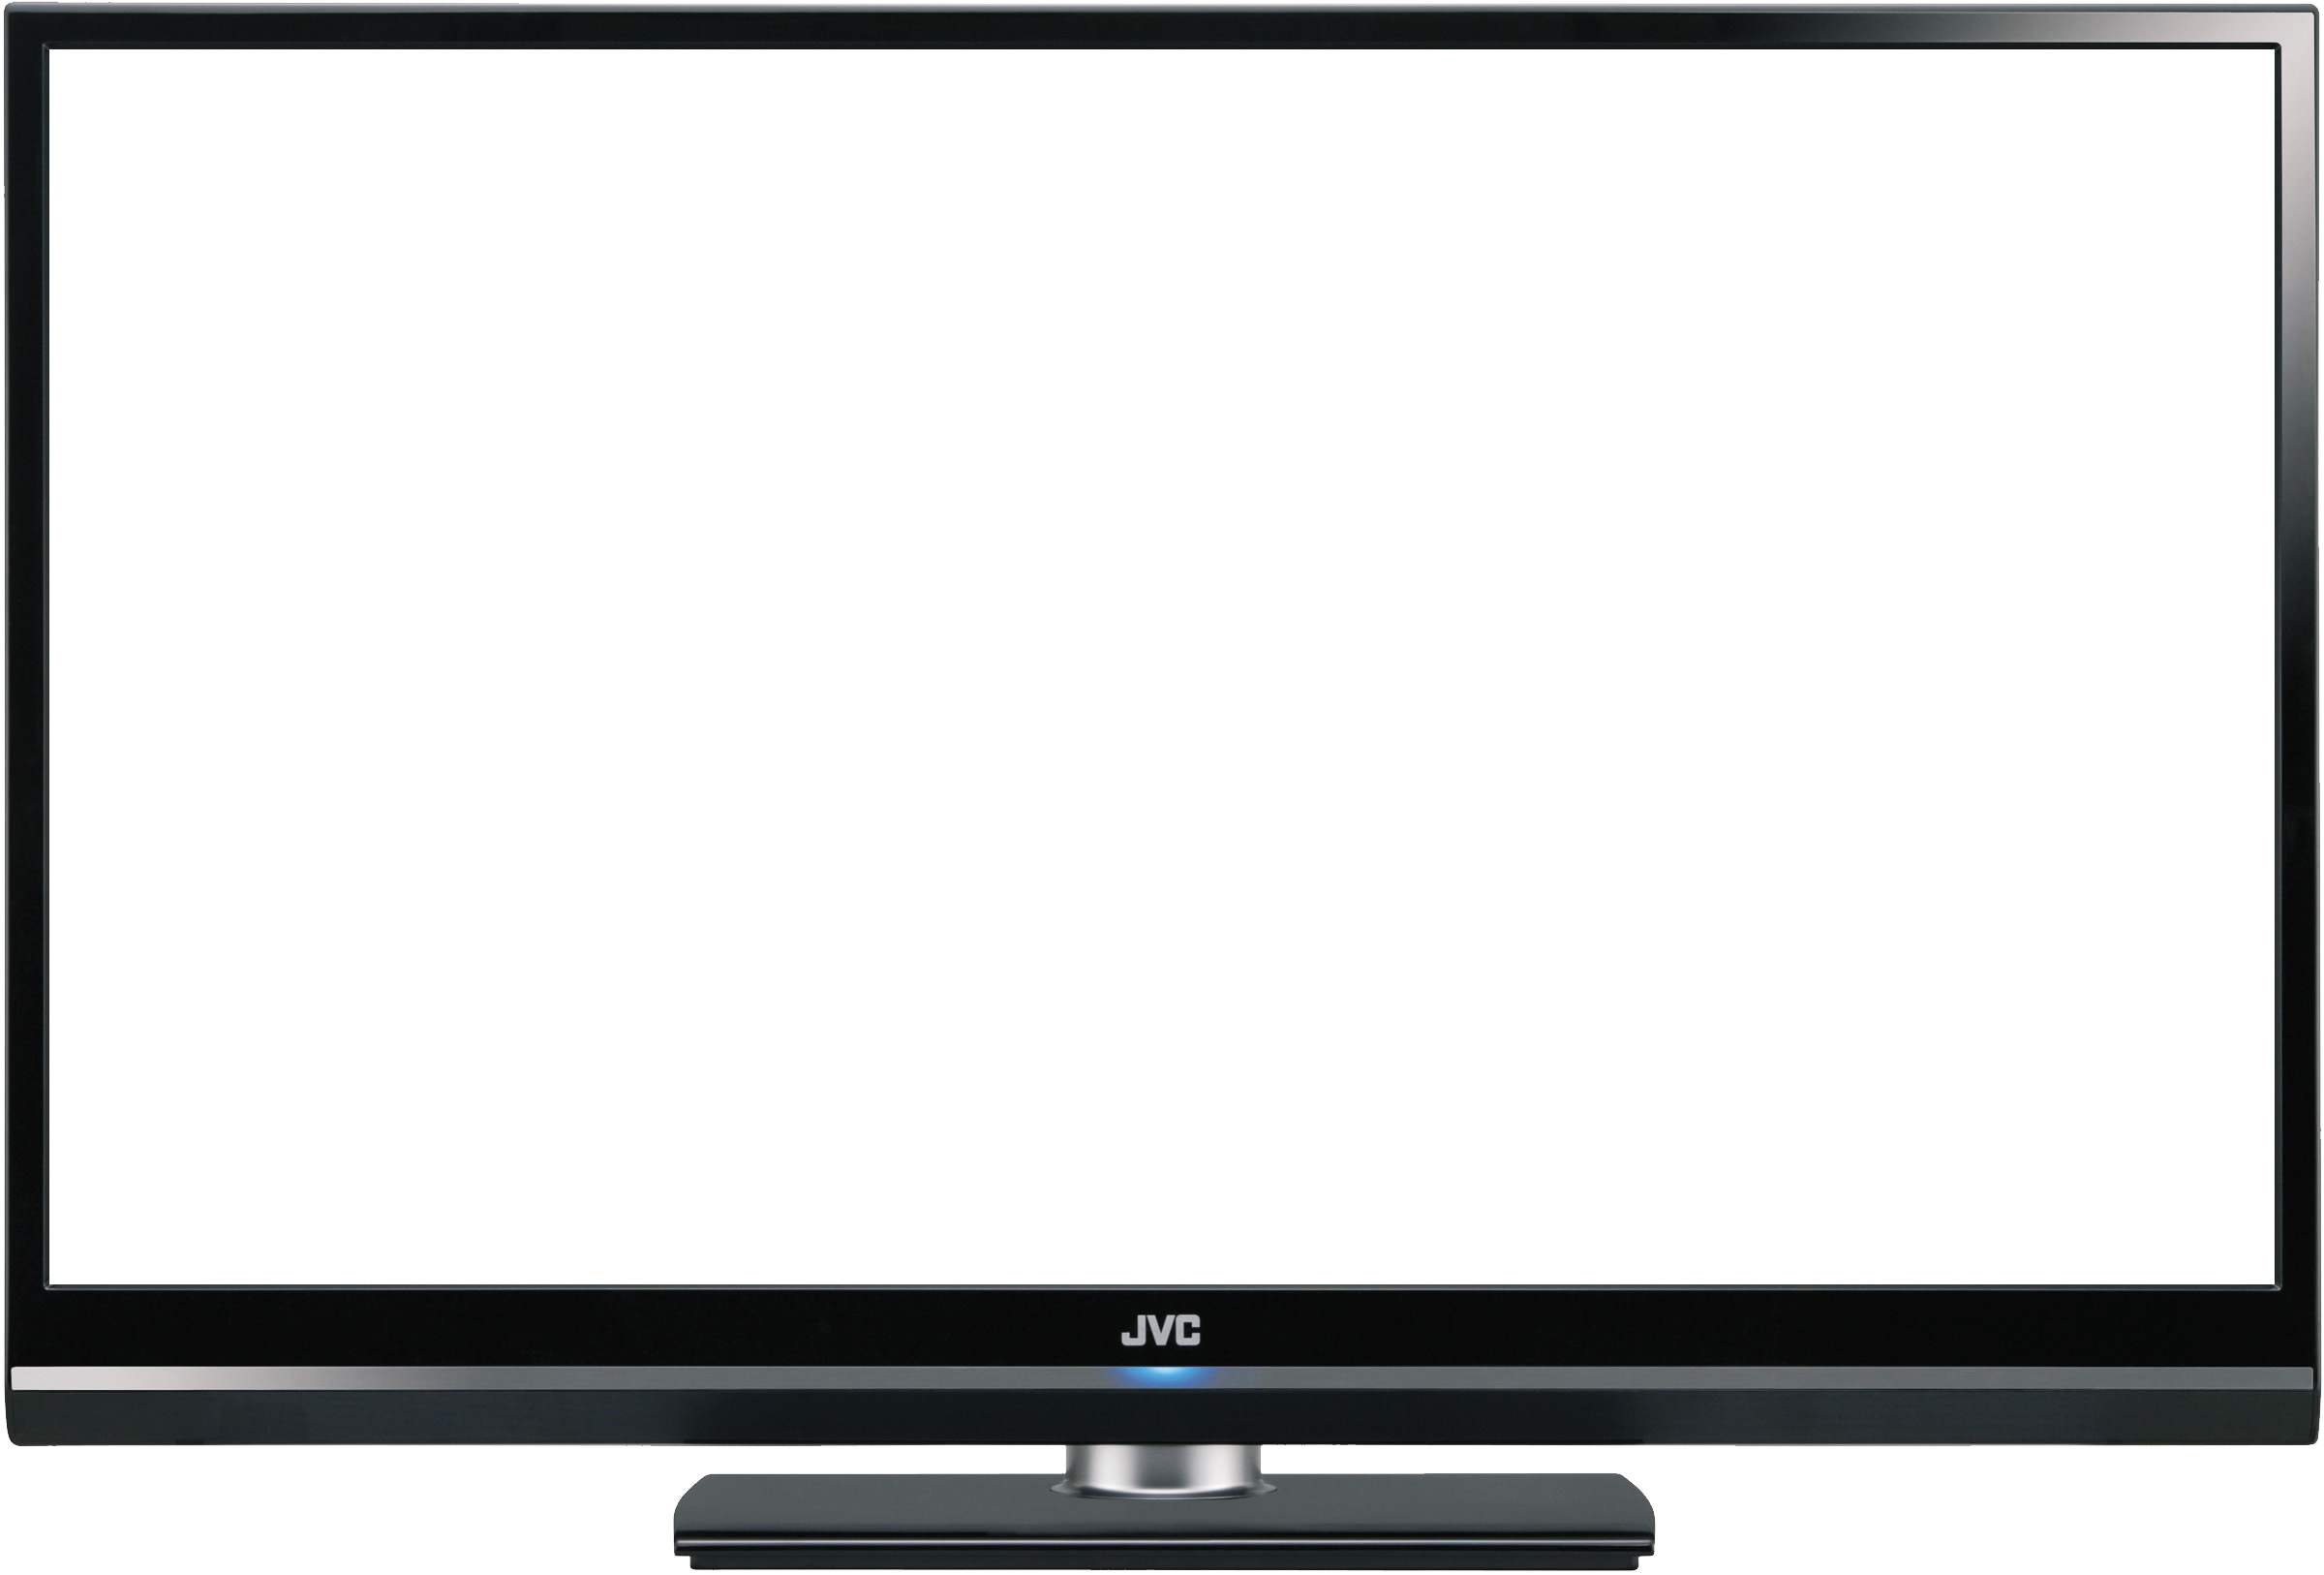 Monitor transparent LCD PNG image